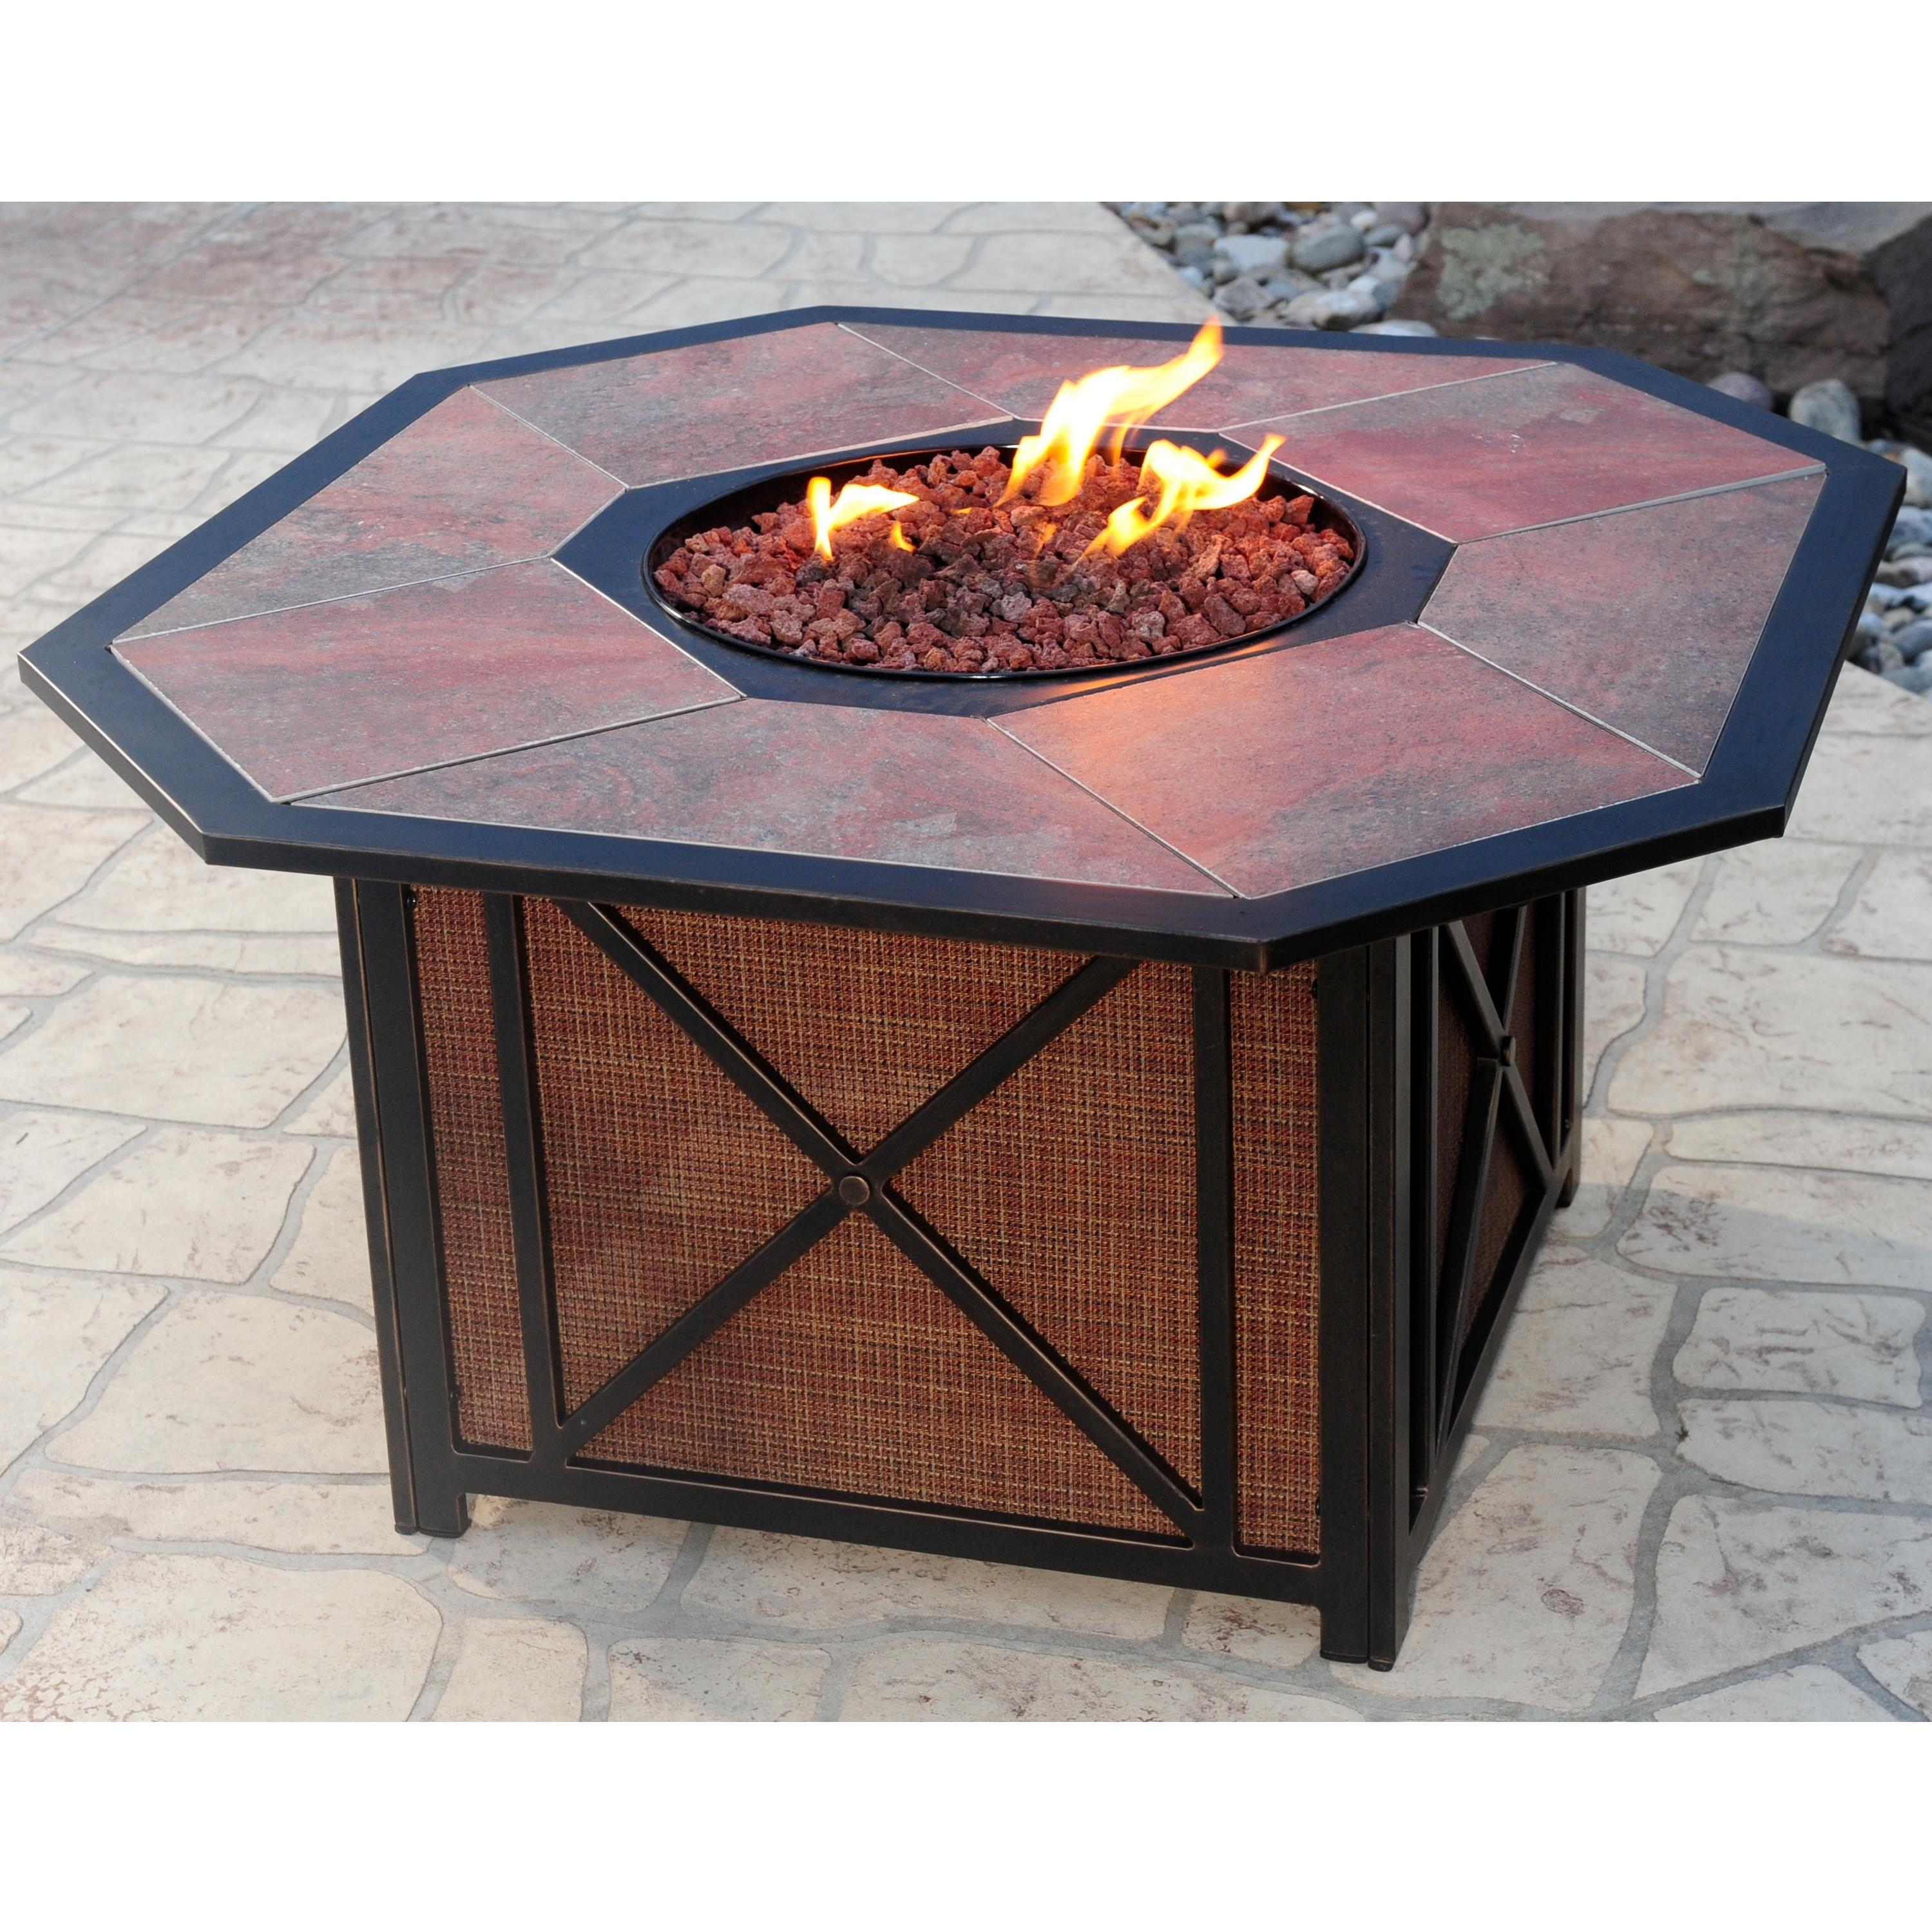 Marvelous Haywood Aluminum Gas Fire Pit With Inlaid Porcelain Tile Top By Agio